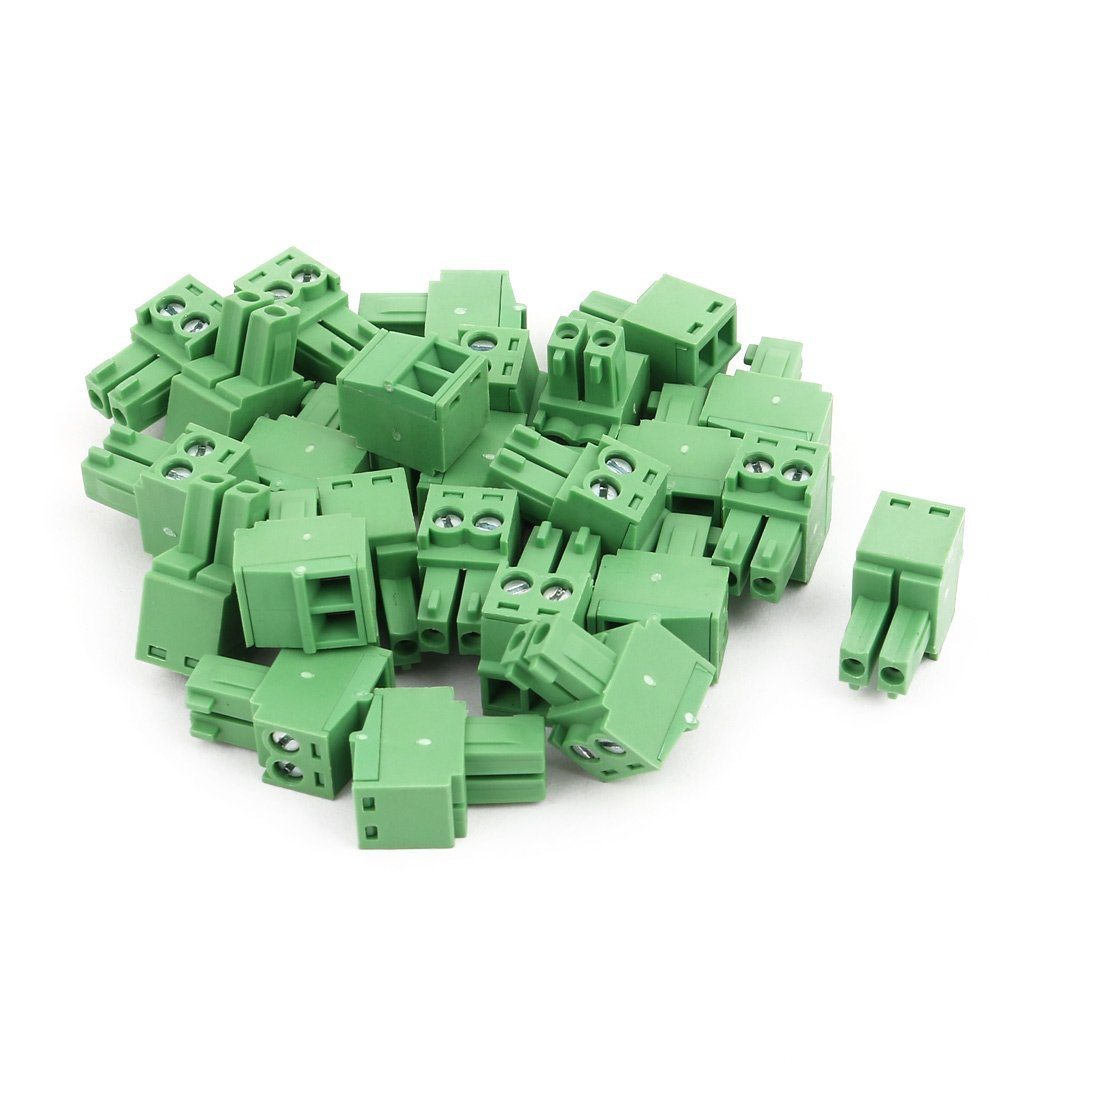 uxcell 25Pcs AC 300V 8A 3.5mm Pitch 2P PCB Mounting Terminal Block Wire Connection Green